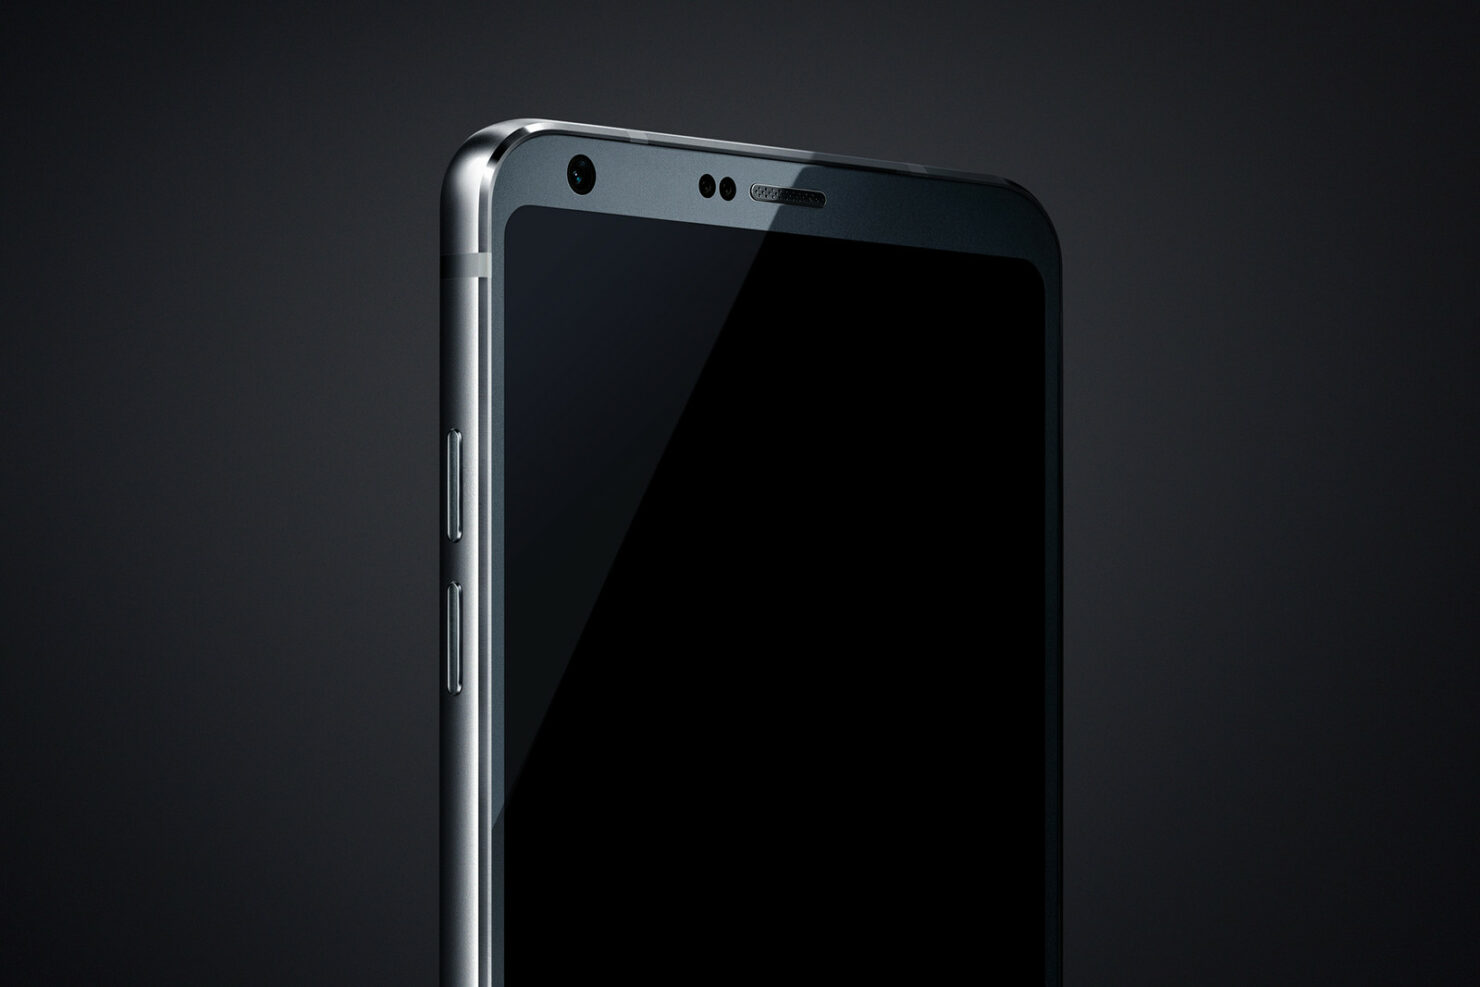 LG G6 removable battery feature no more